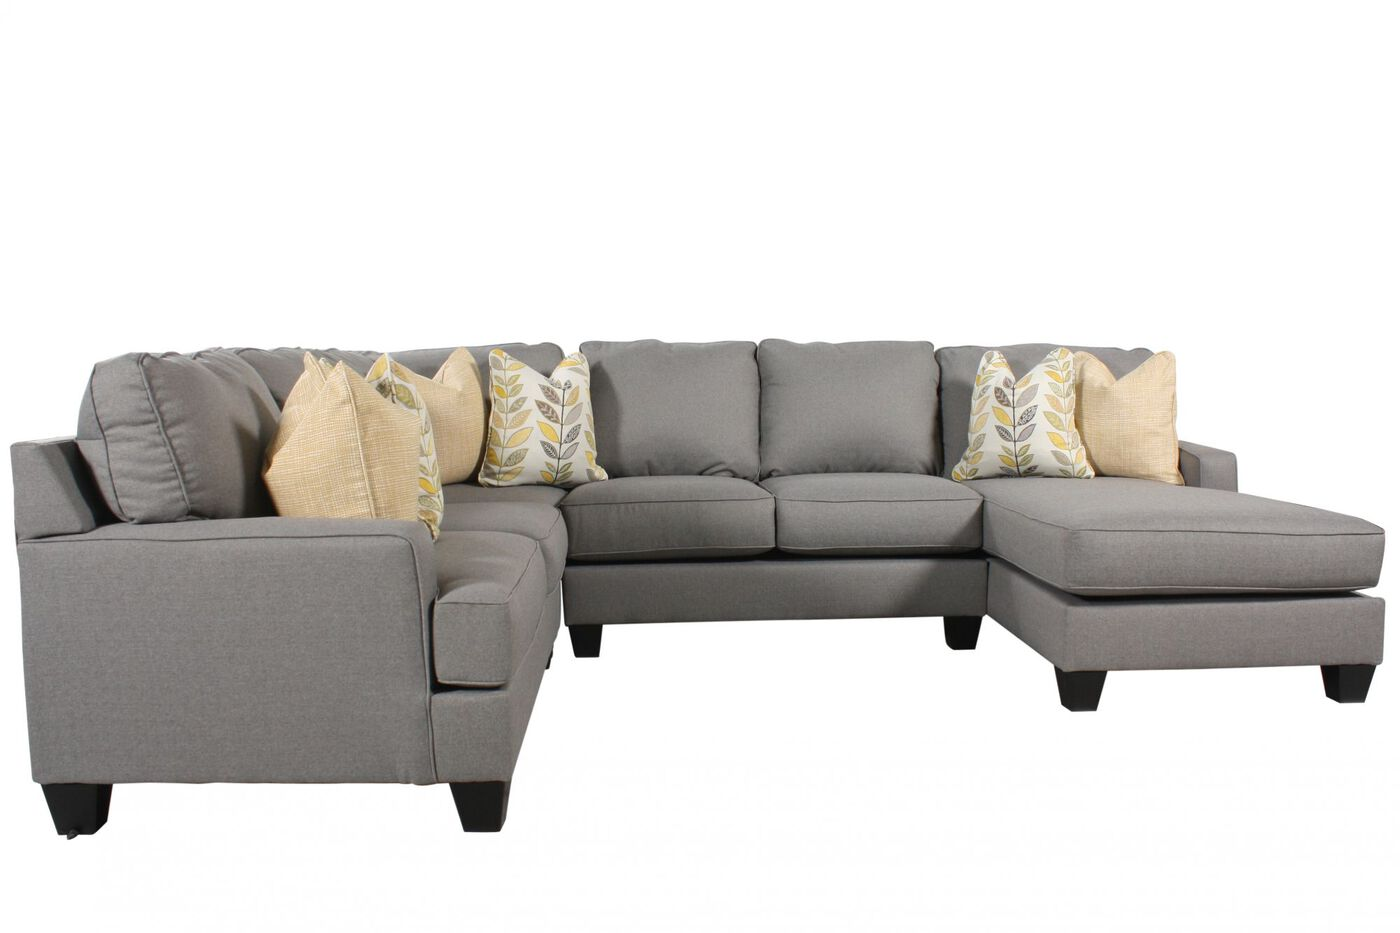 Four piece contemporary 37 5 sectional in alloy mathis for 4 living furniture